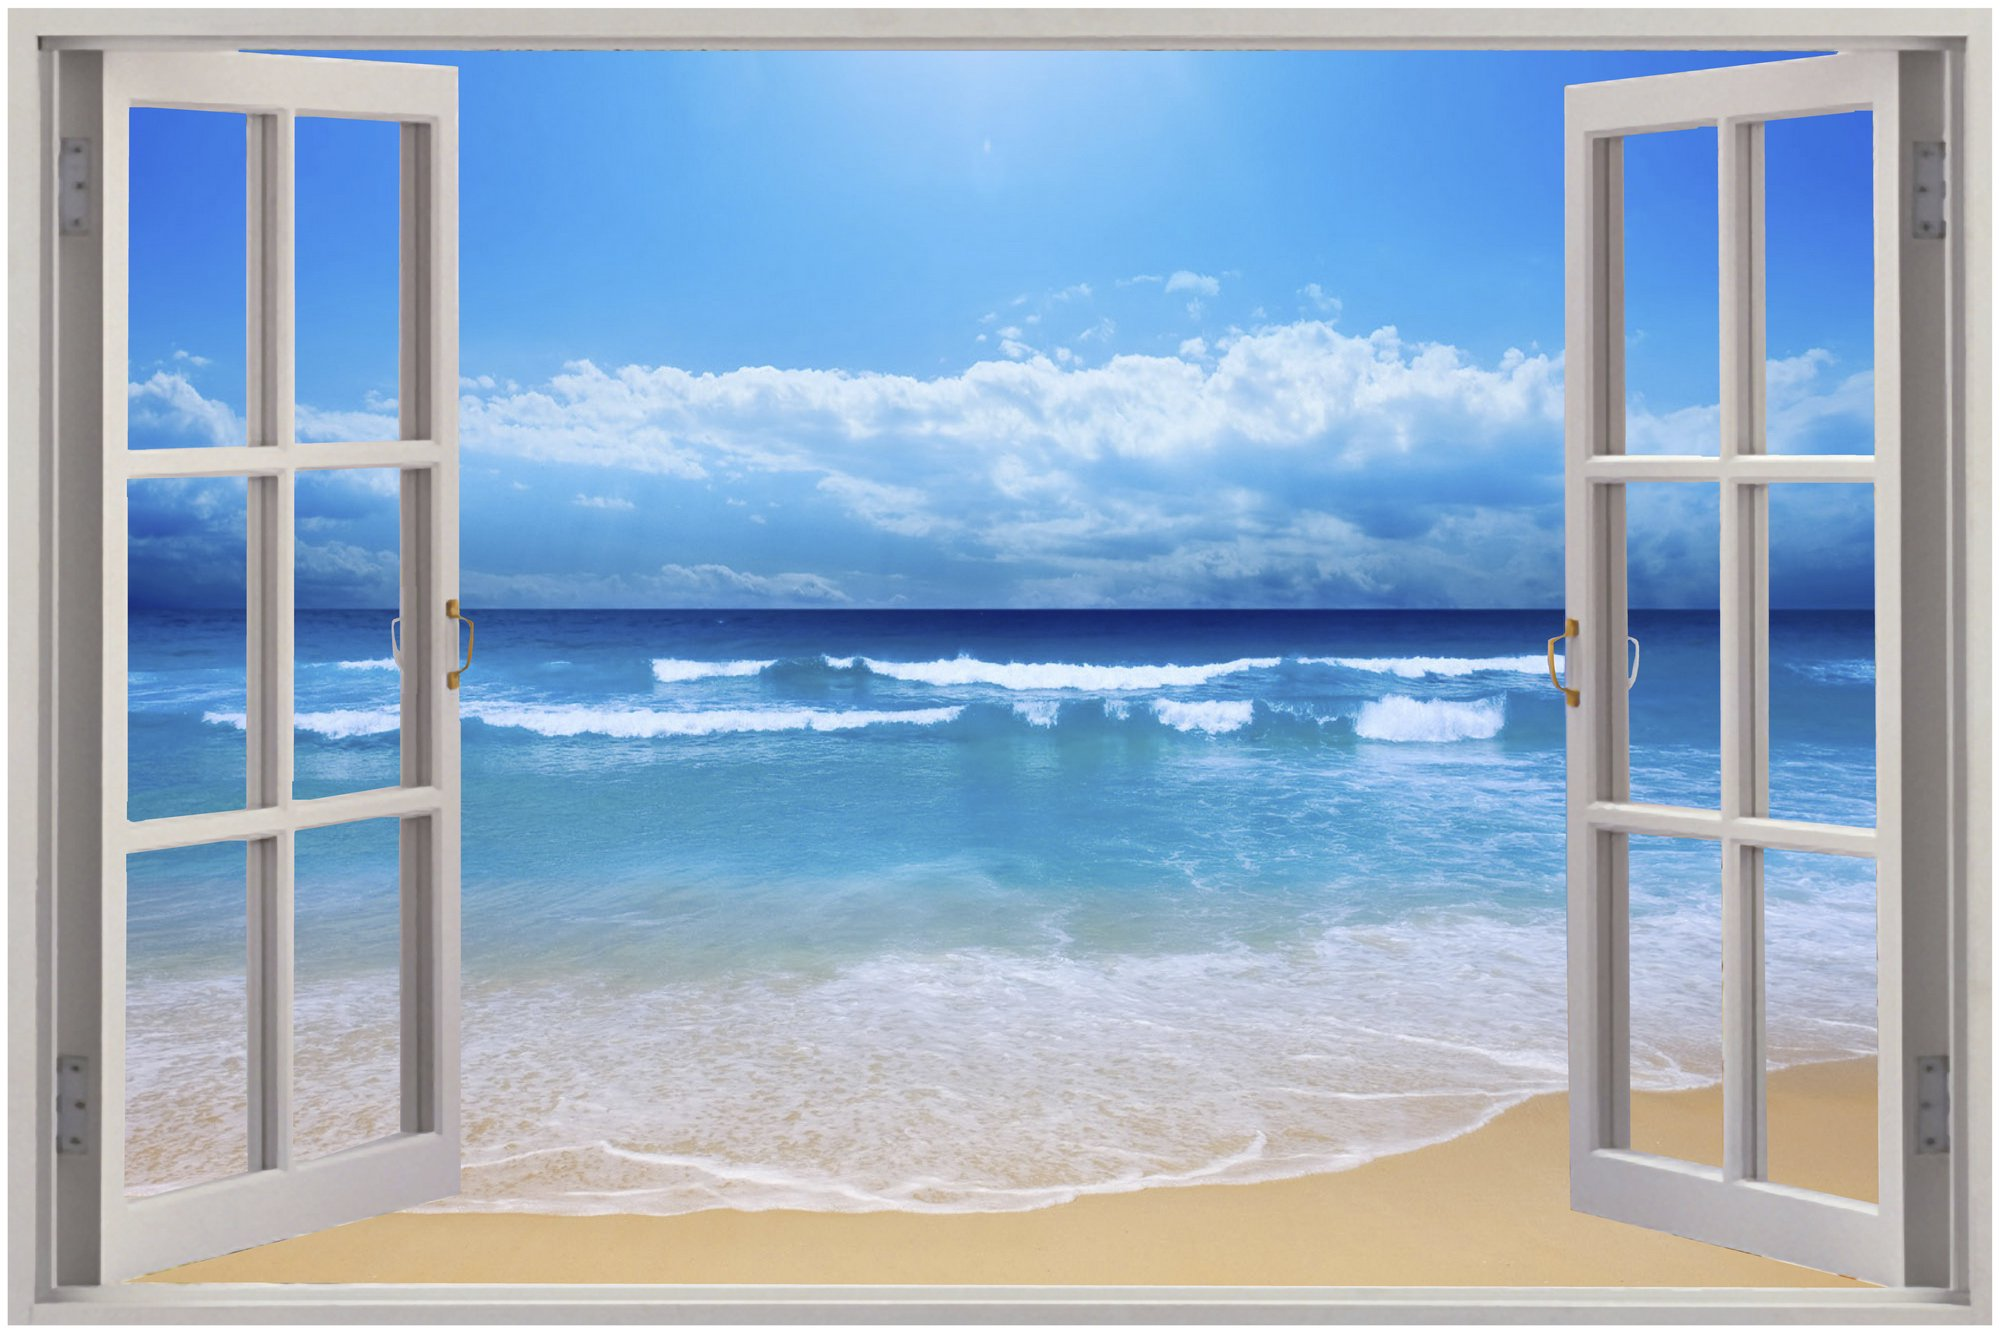 Exotic Beach View Wall Stickers Film Mural Art Decal Wallpaper eBay 2000x1333